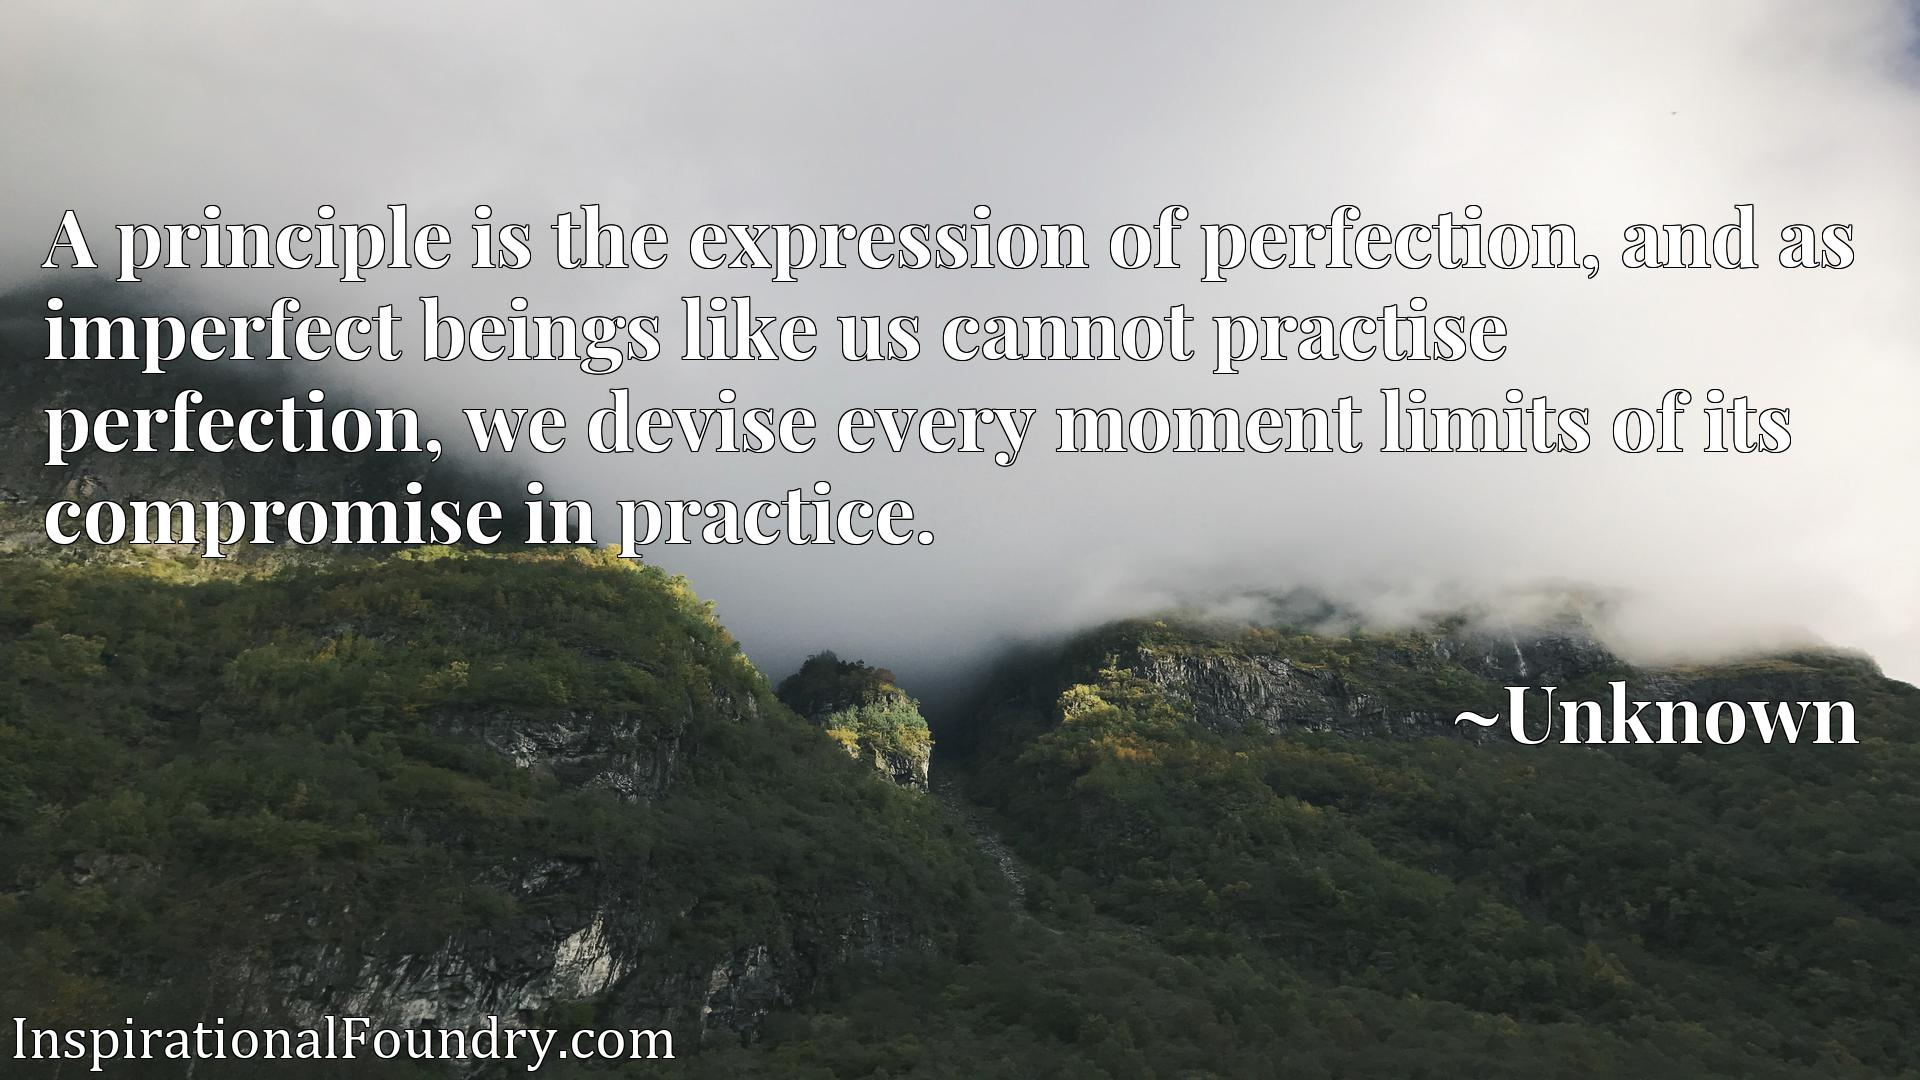 A principle is the expression of perfection, and as imperfect beings like us cannot practise perfection, we devise every moment limits of its compromise in practice.